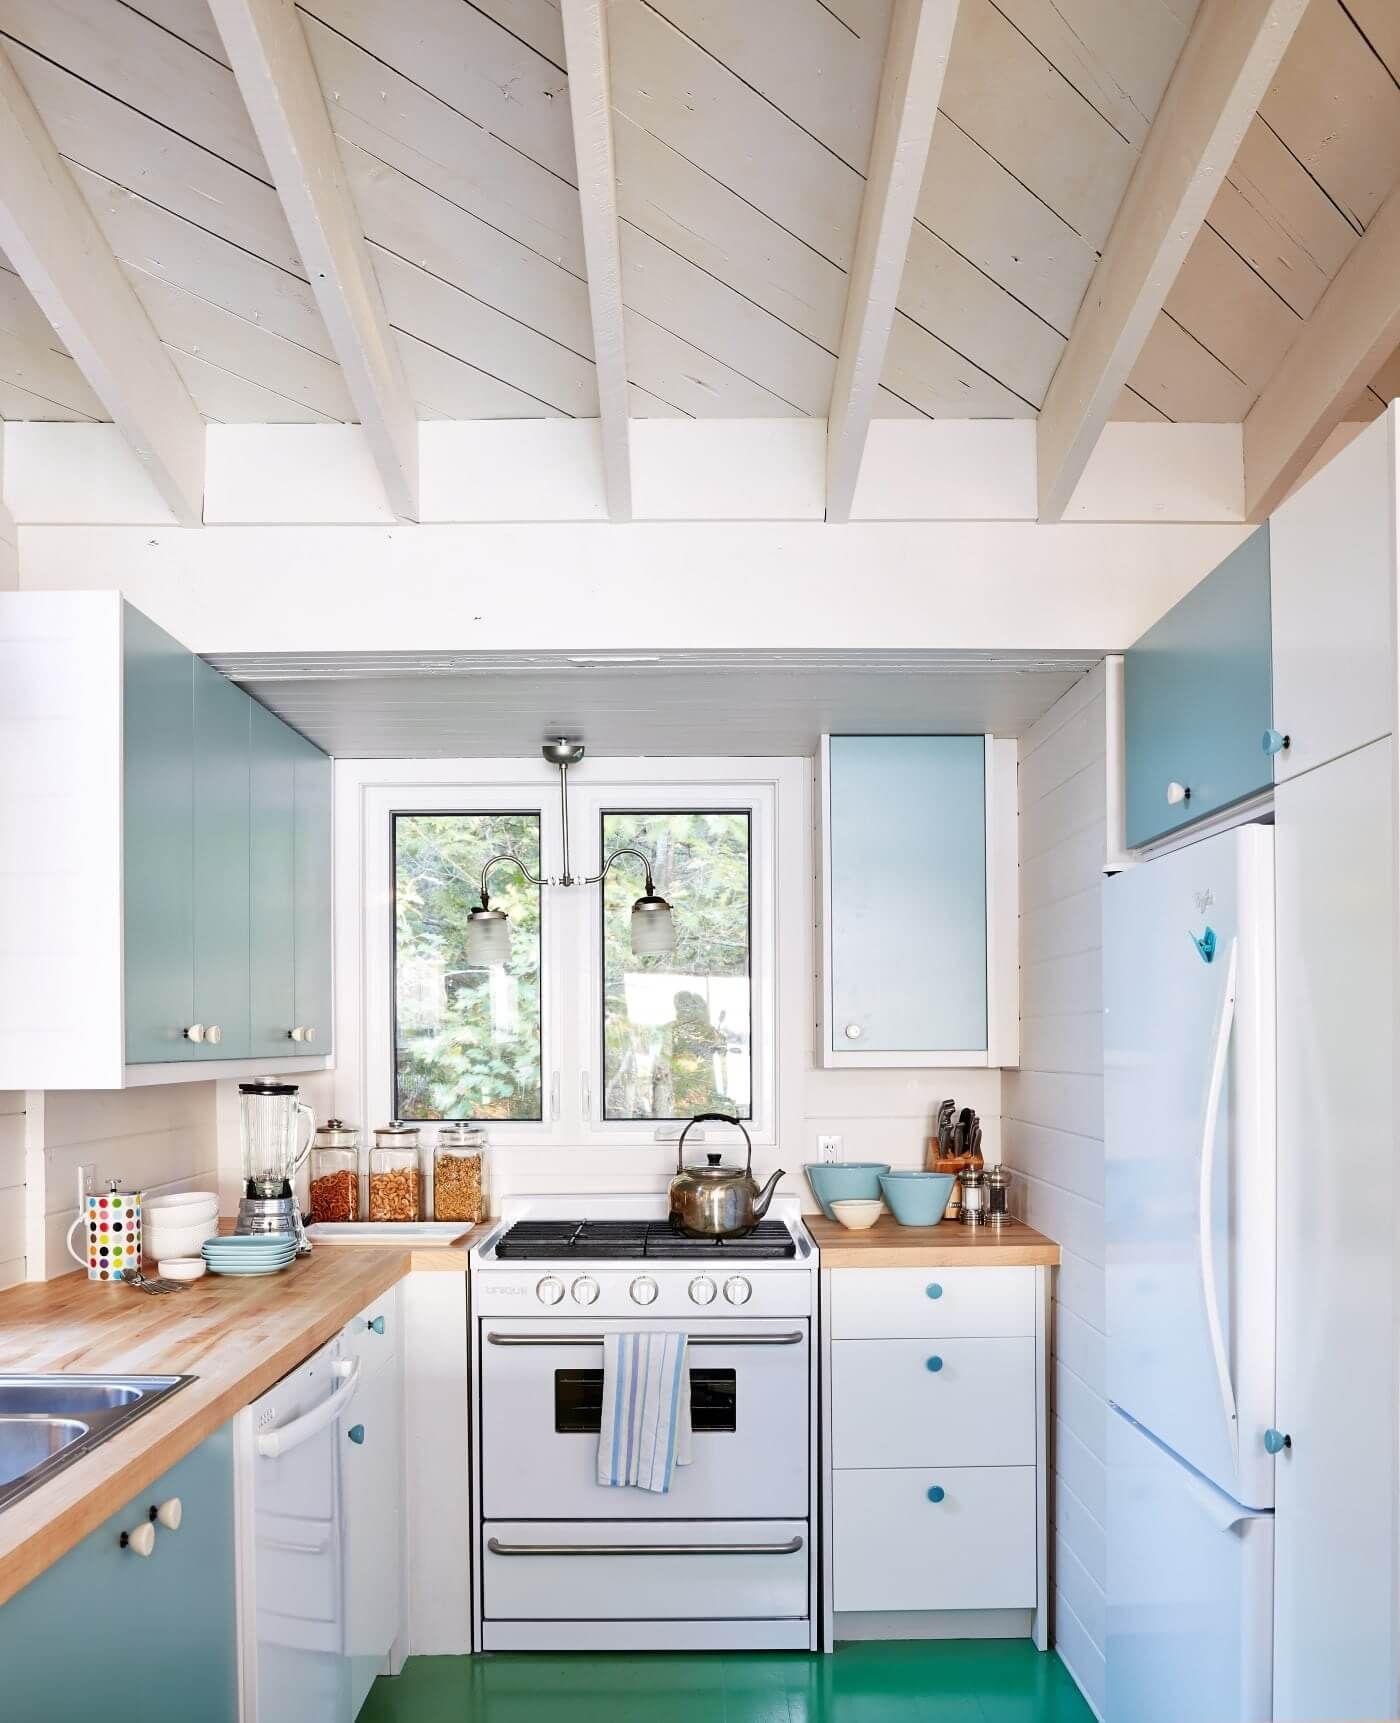 23 Best Cottage Kitchen Decorating Ideas And Designs For 2020: Best Coastal Kitchens: Get Beach Themed Kitchens Decor